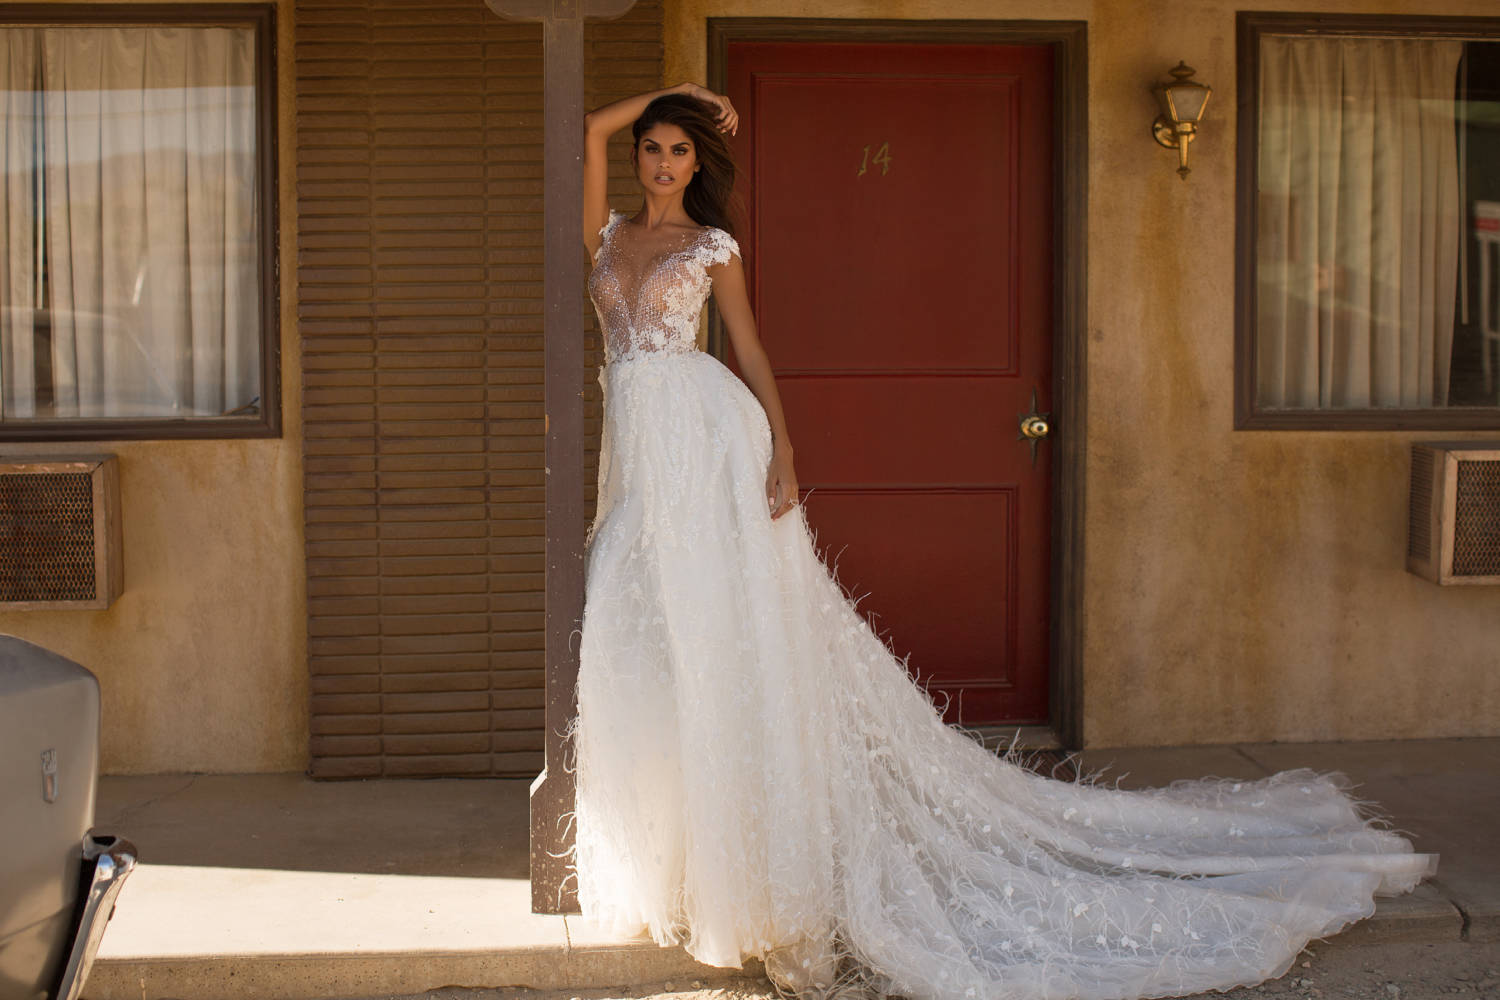 Blushing Bridal Boutique ,MillaNova, Janis, California Dreaming, New Collection 2019 -wedding gown-Mississauga-woodbridge-vaughan-toronto-gta-ontario-canada-montreal-buffalo-NYC-california